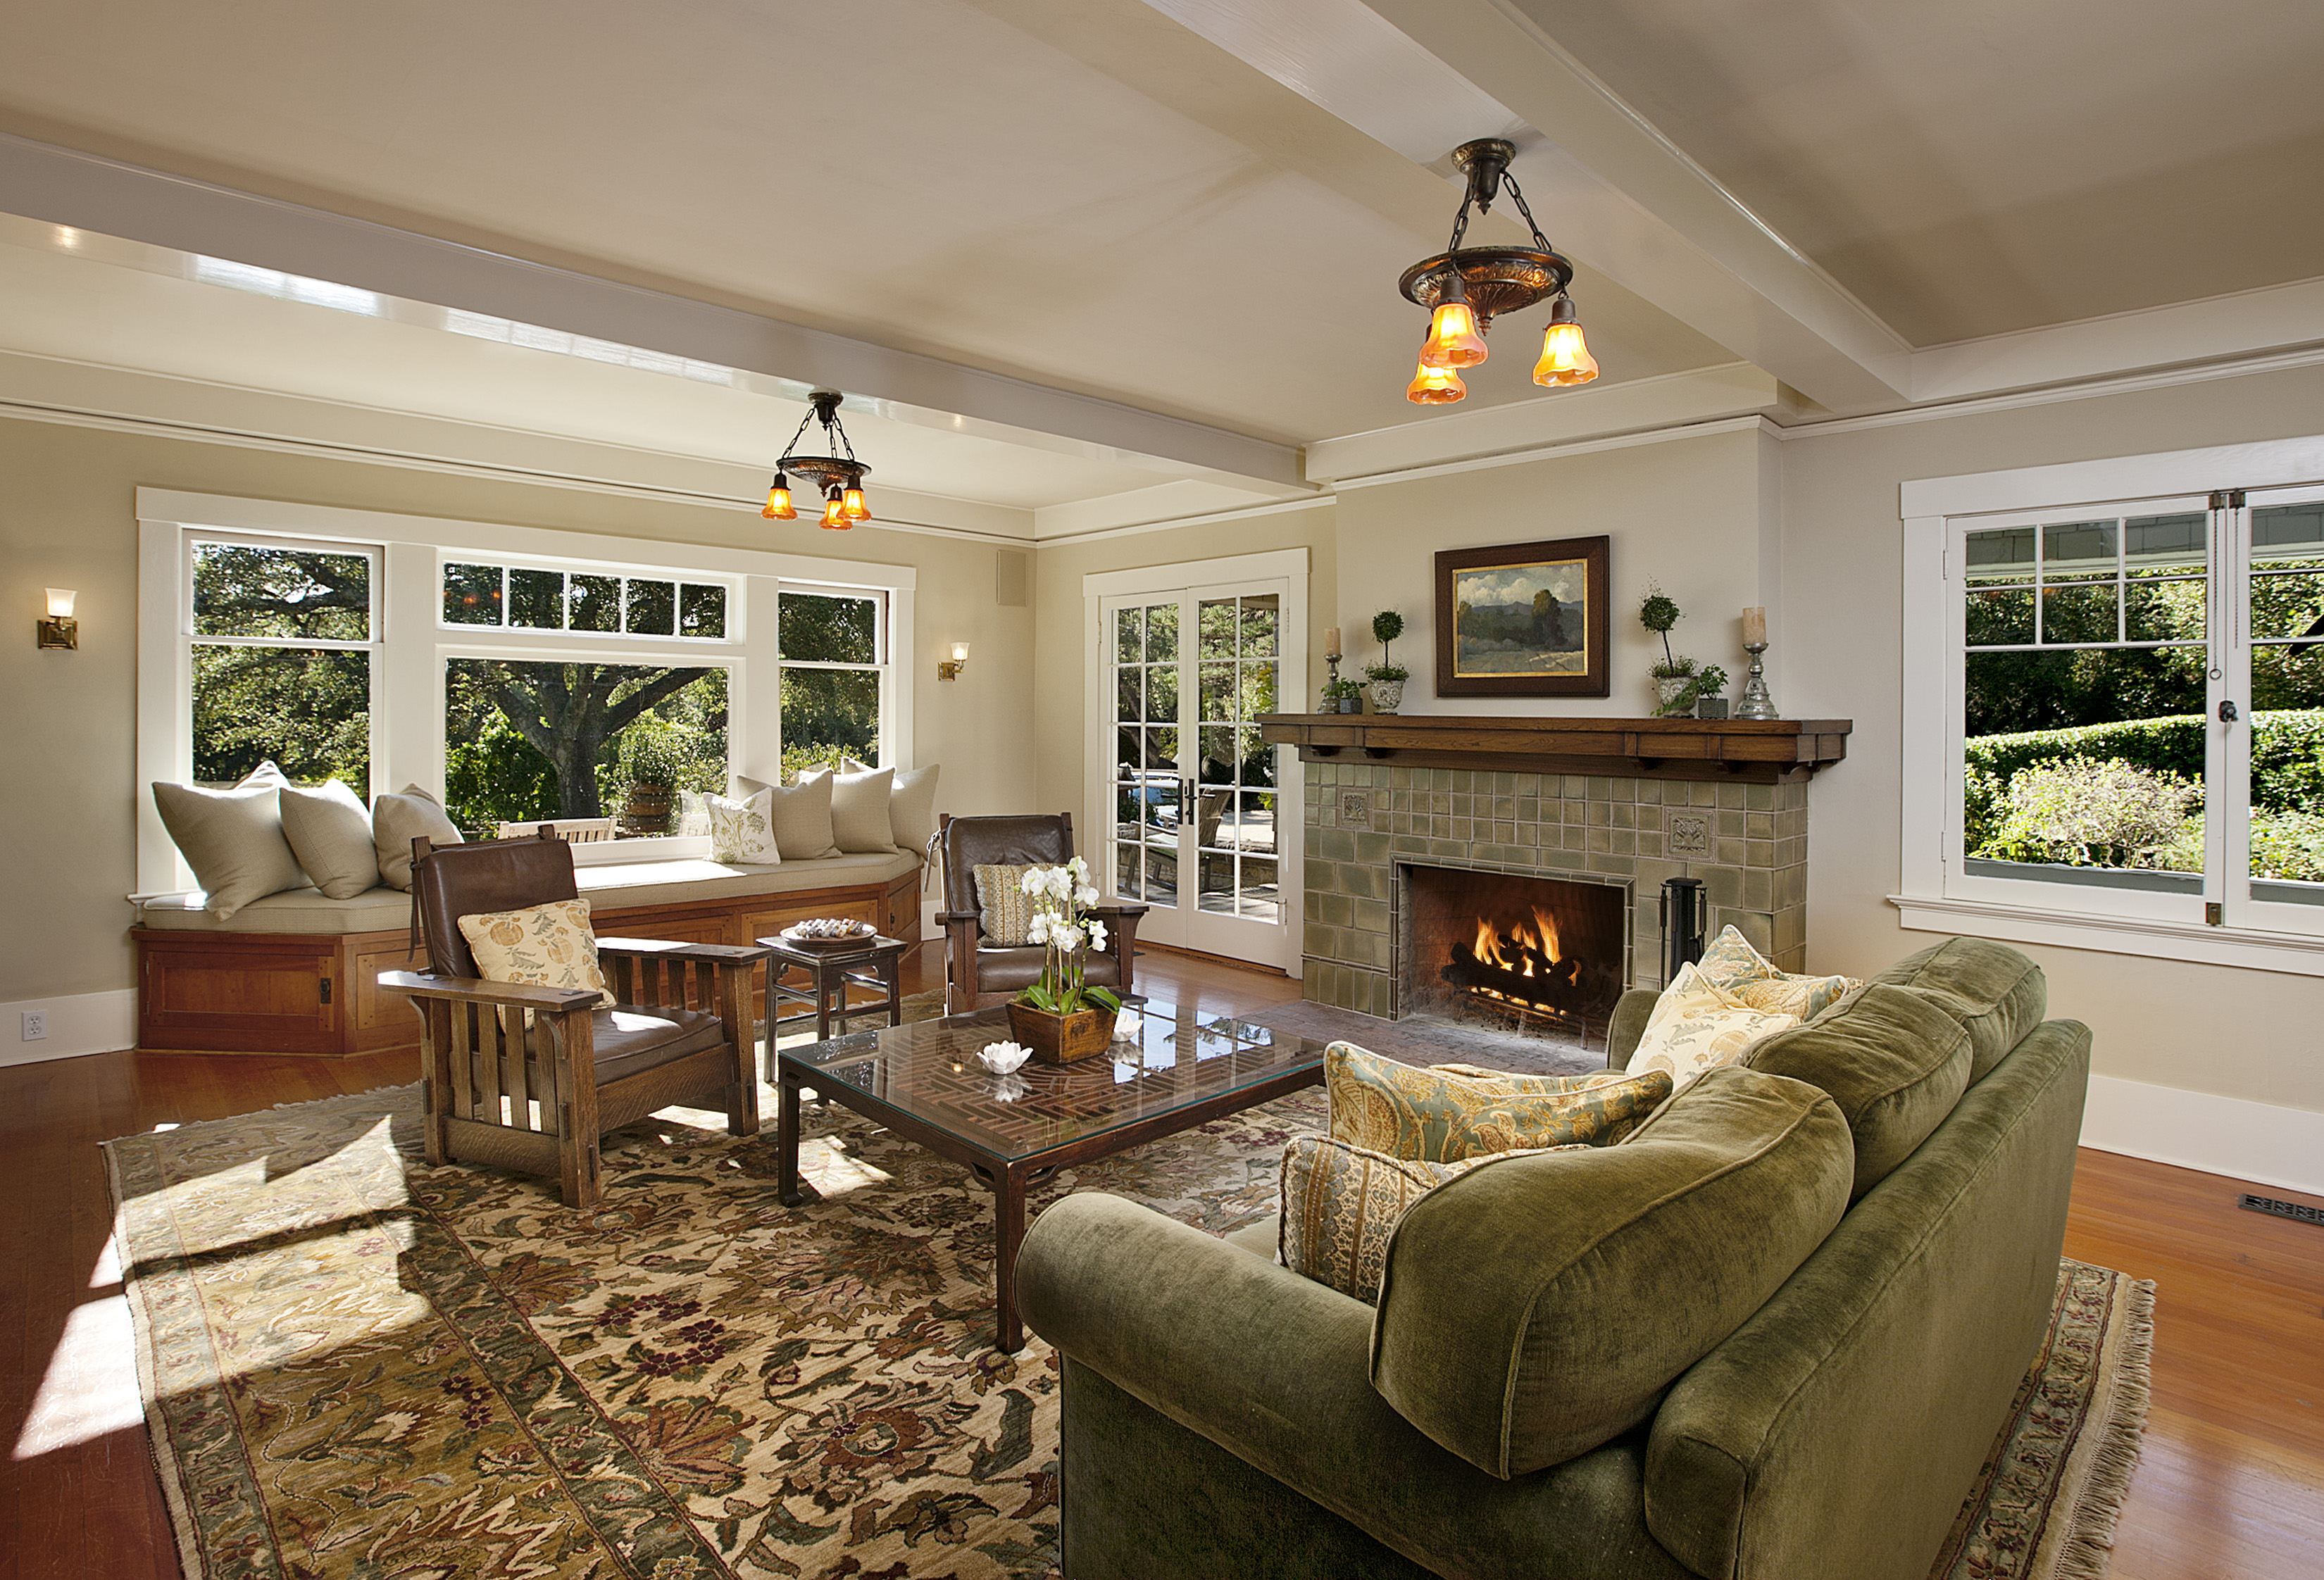 Popular home styles for 2012 montecito real estate for Contemporary design style